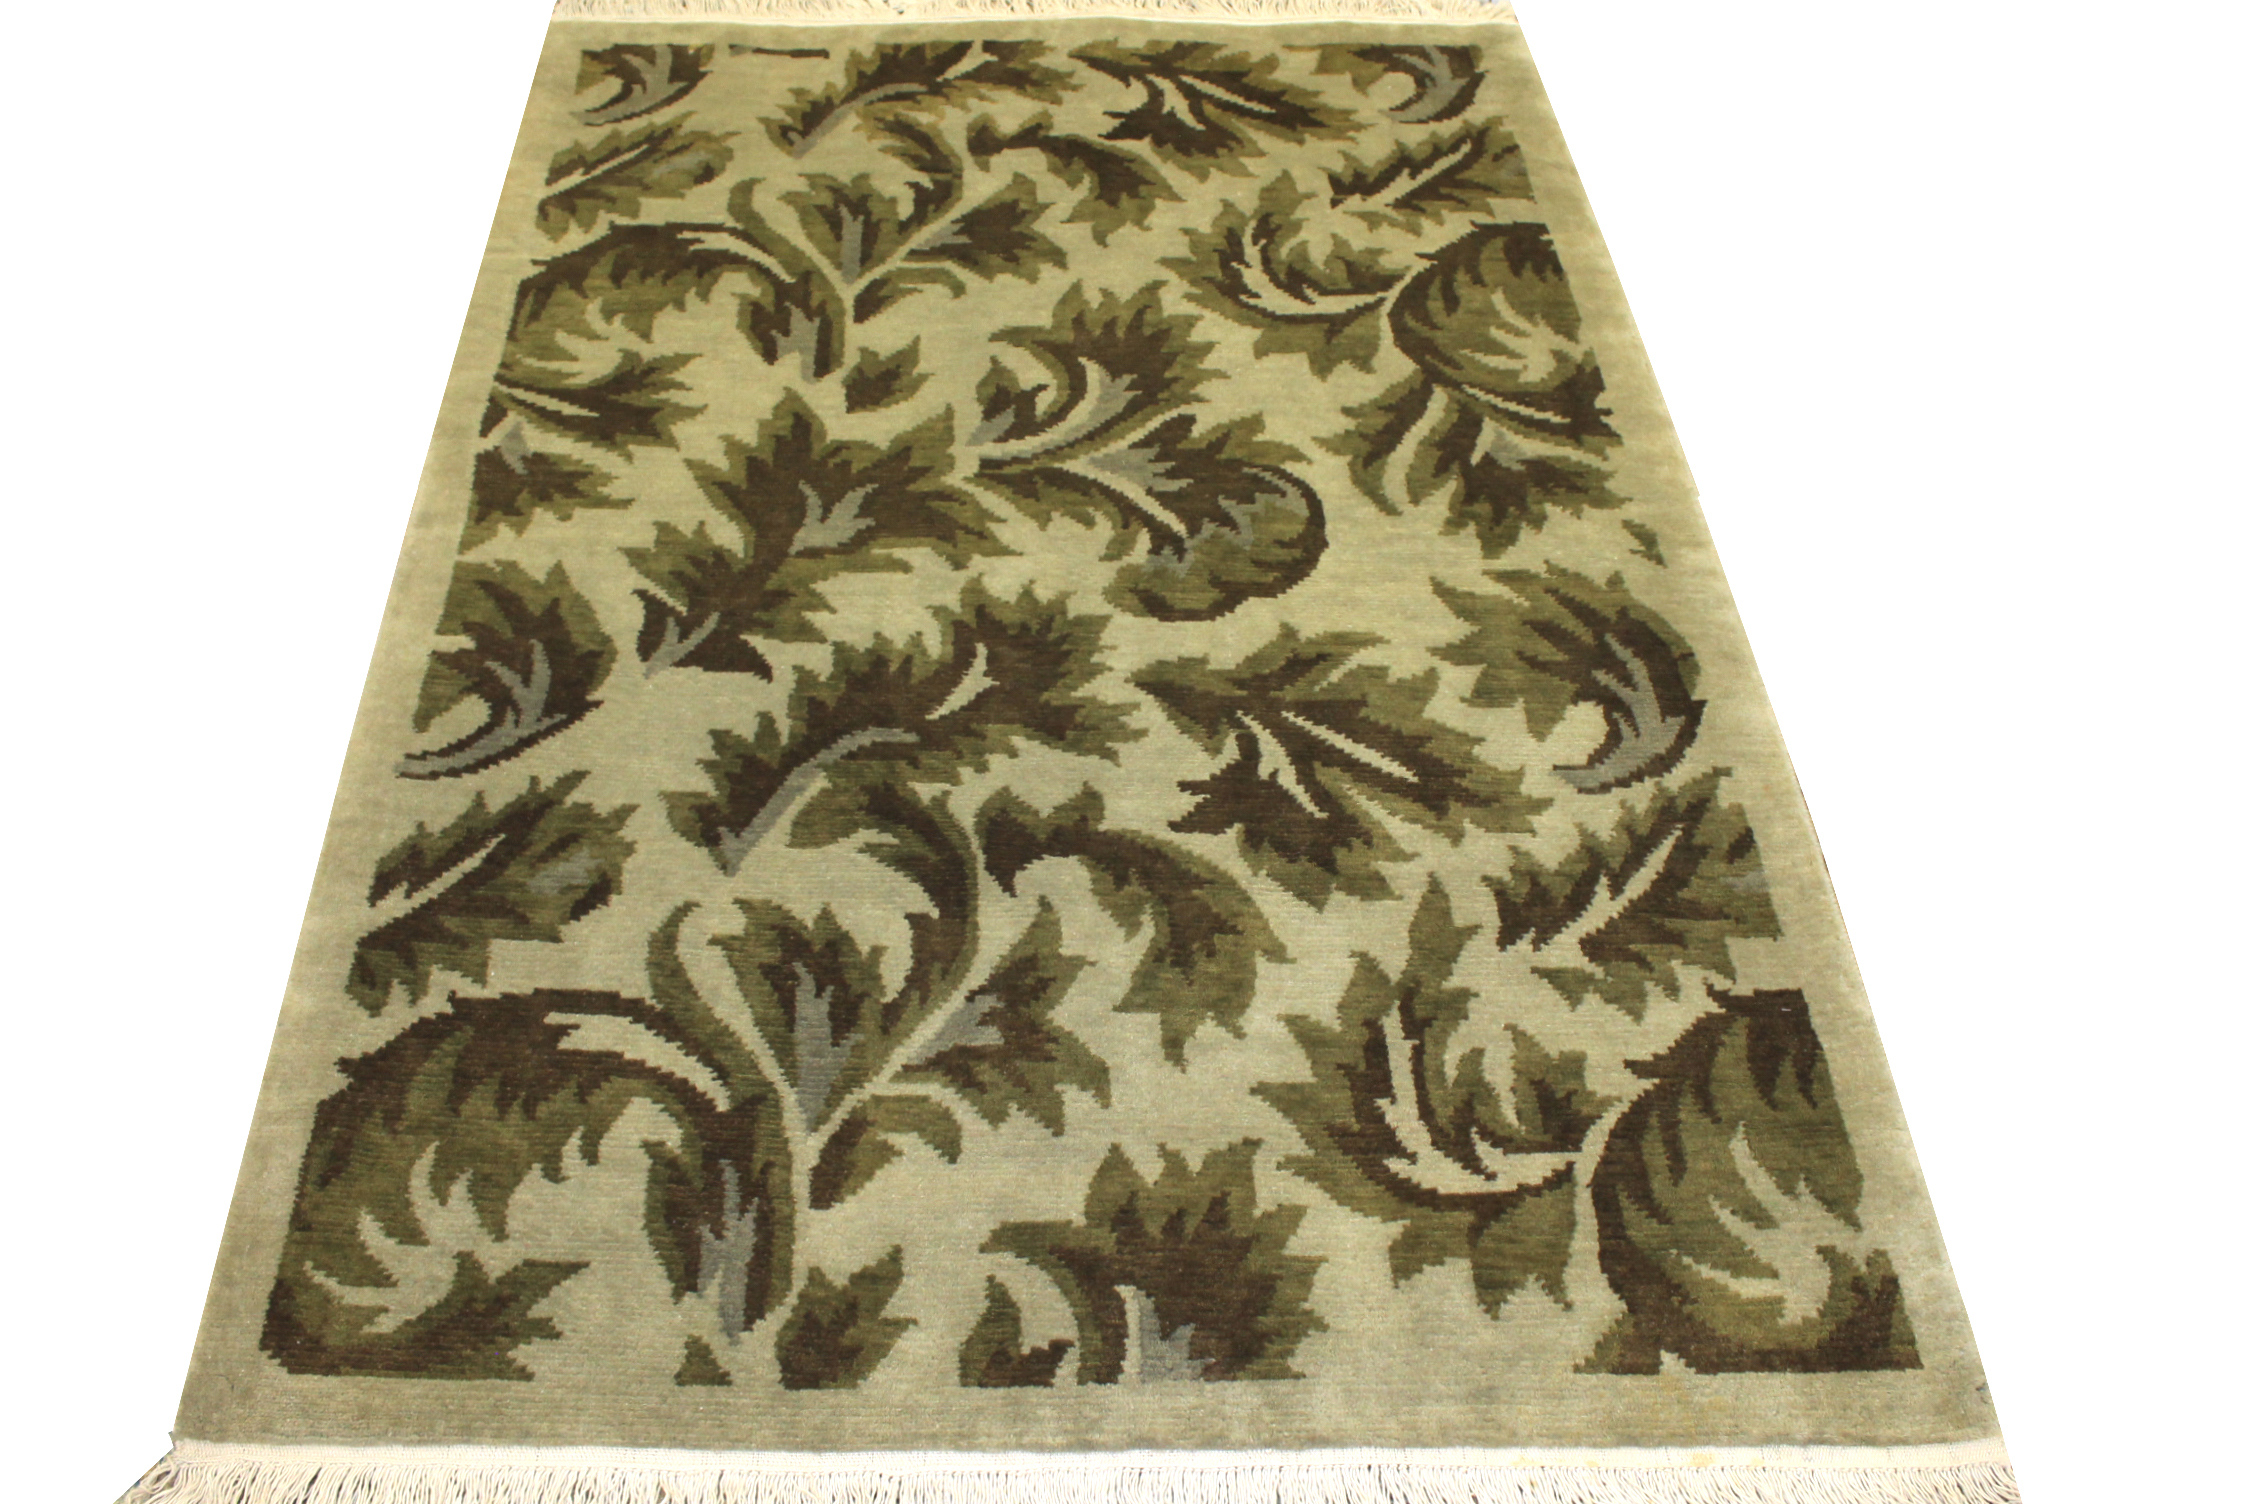 4x6 Traditional Hand Knotted Wool Area Rug - MR0286